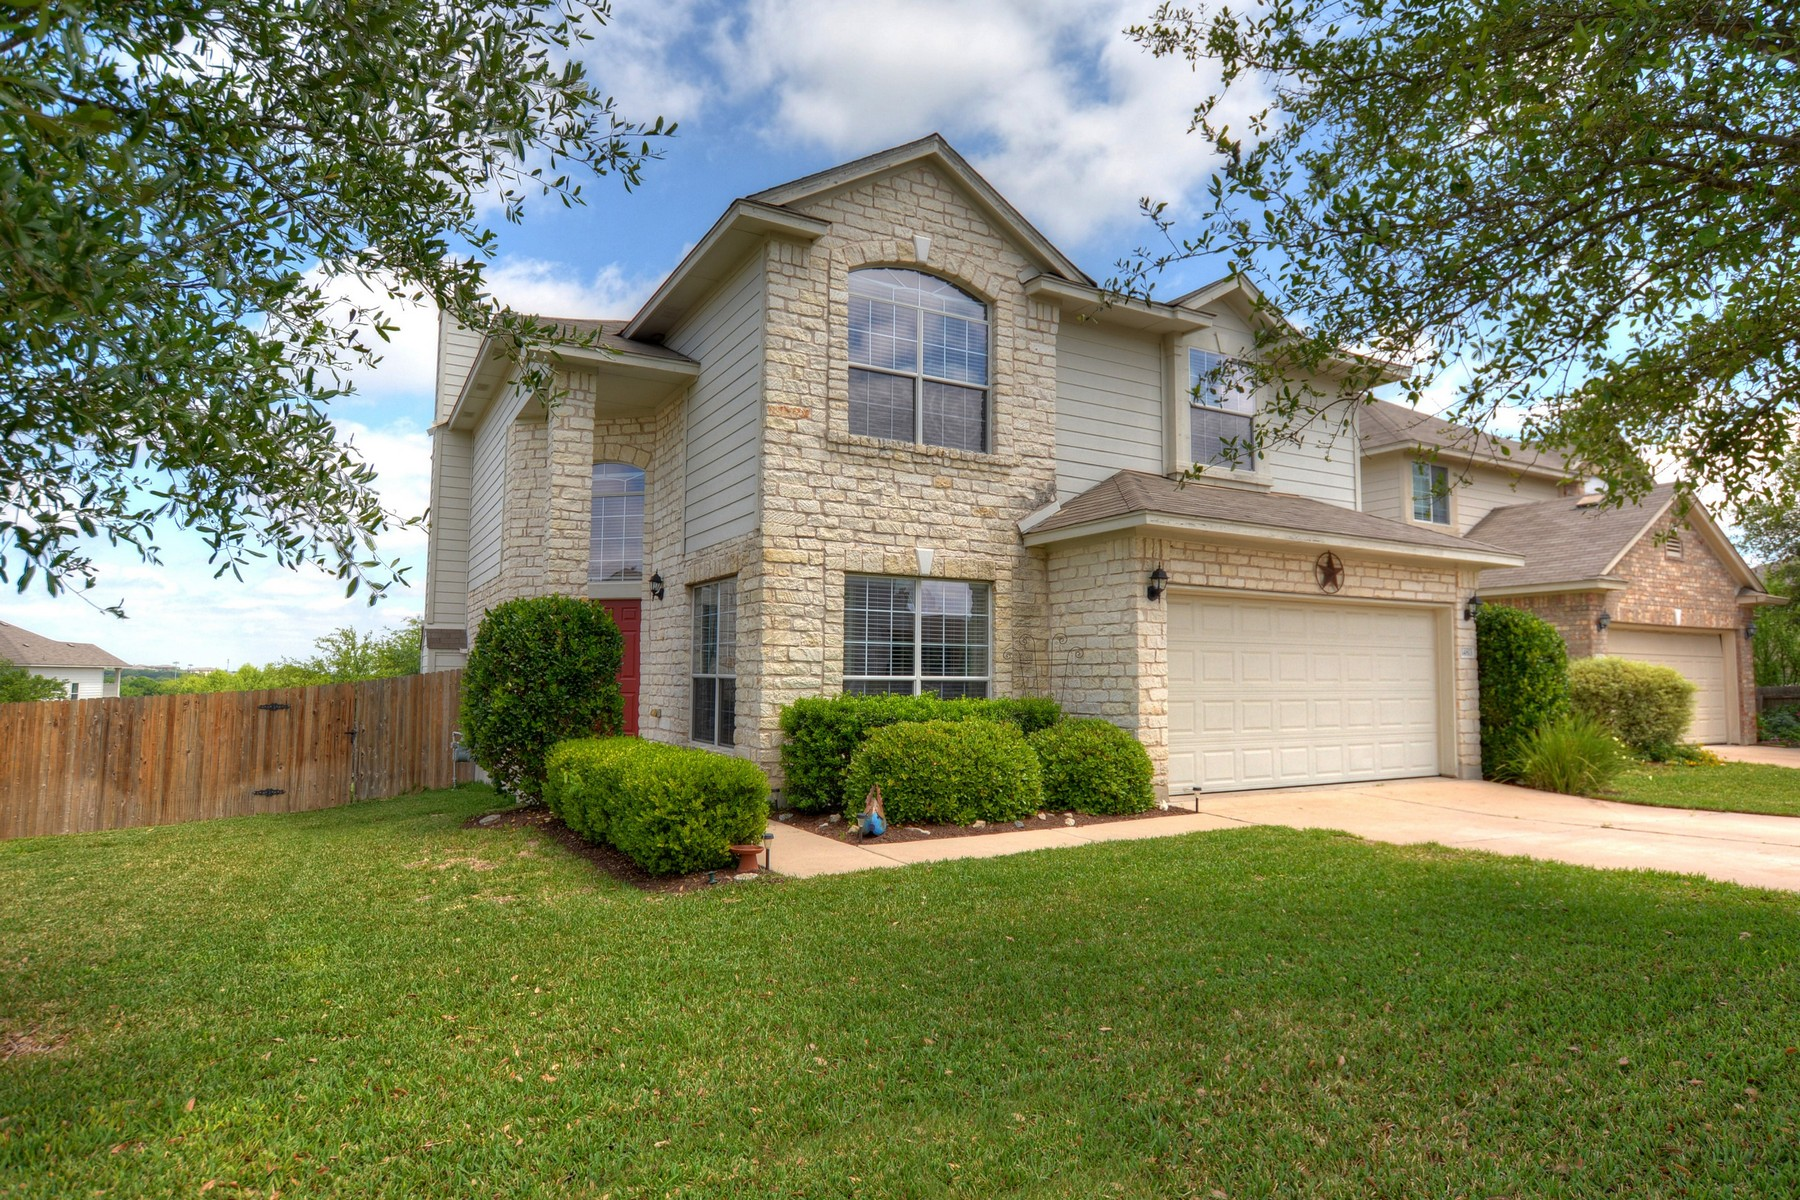 Single Family Home for Sale at Great Location in Avery Ranch 14813 La Llorona Ln Austin, Texas 78717 United States